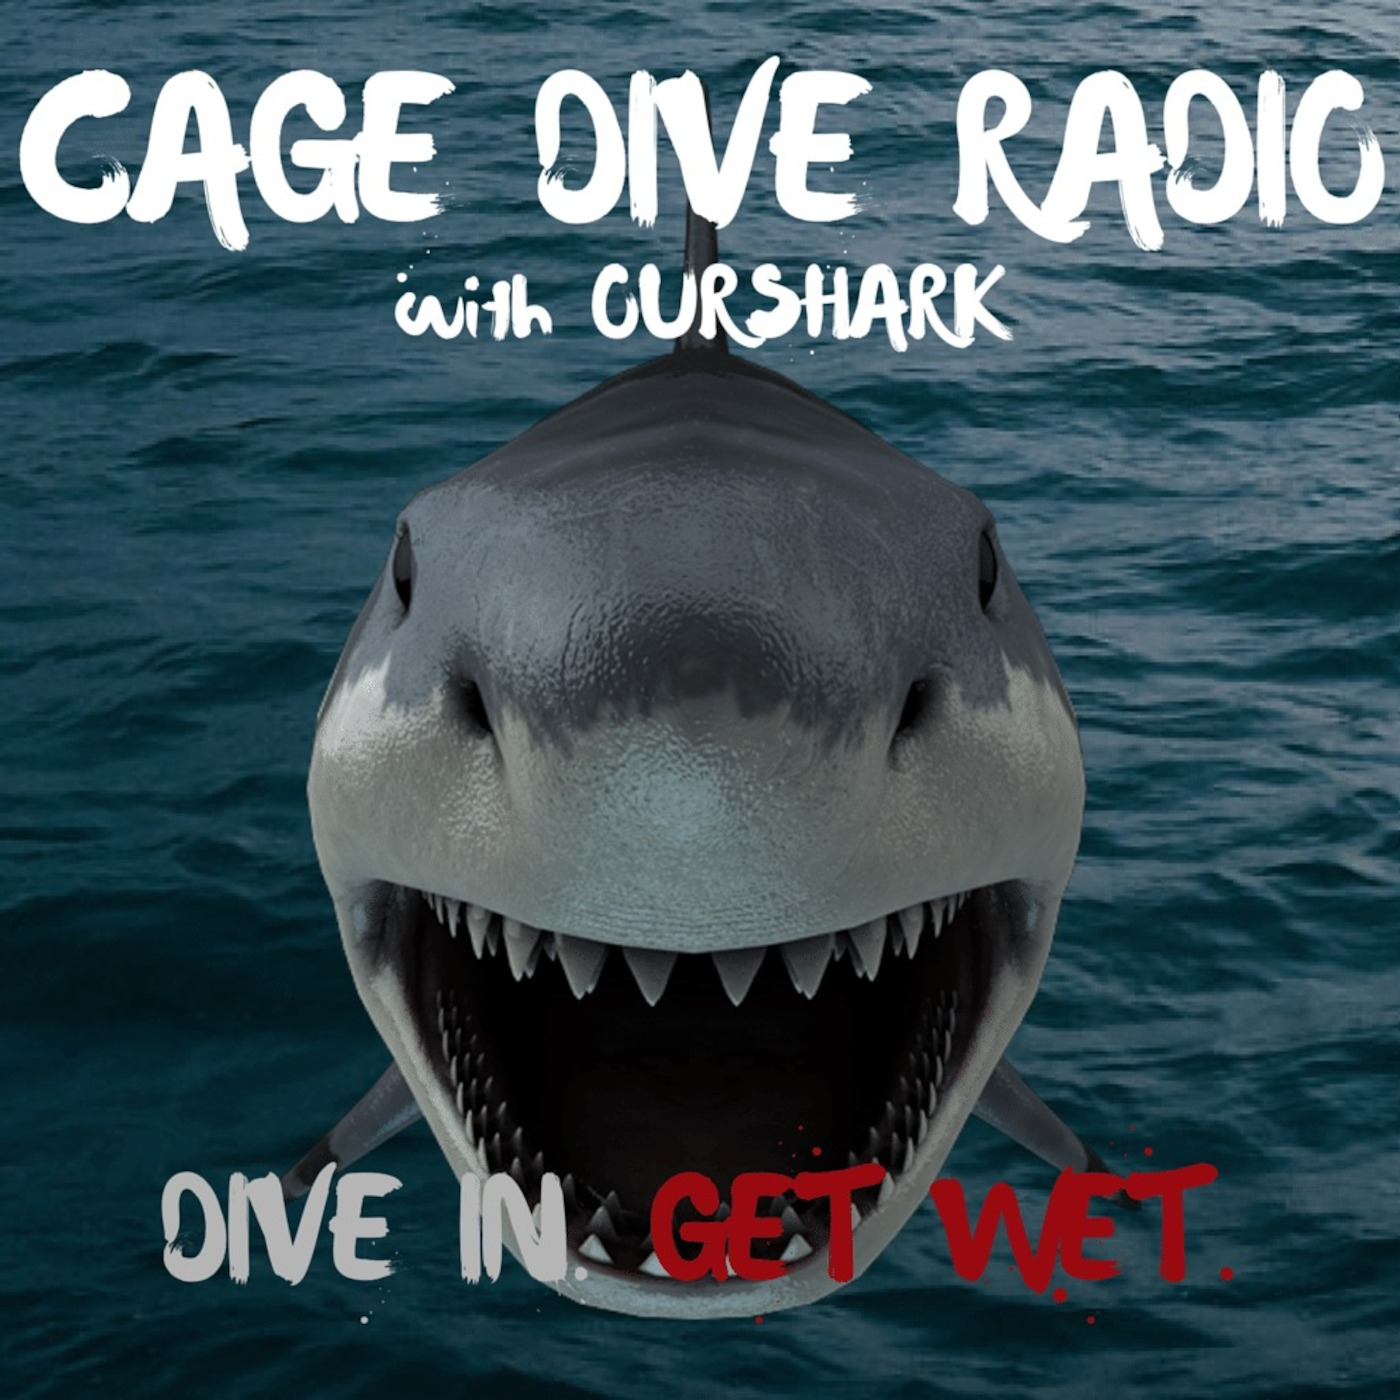 Cage Dive Radio with OurShark